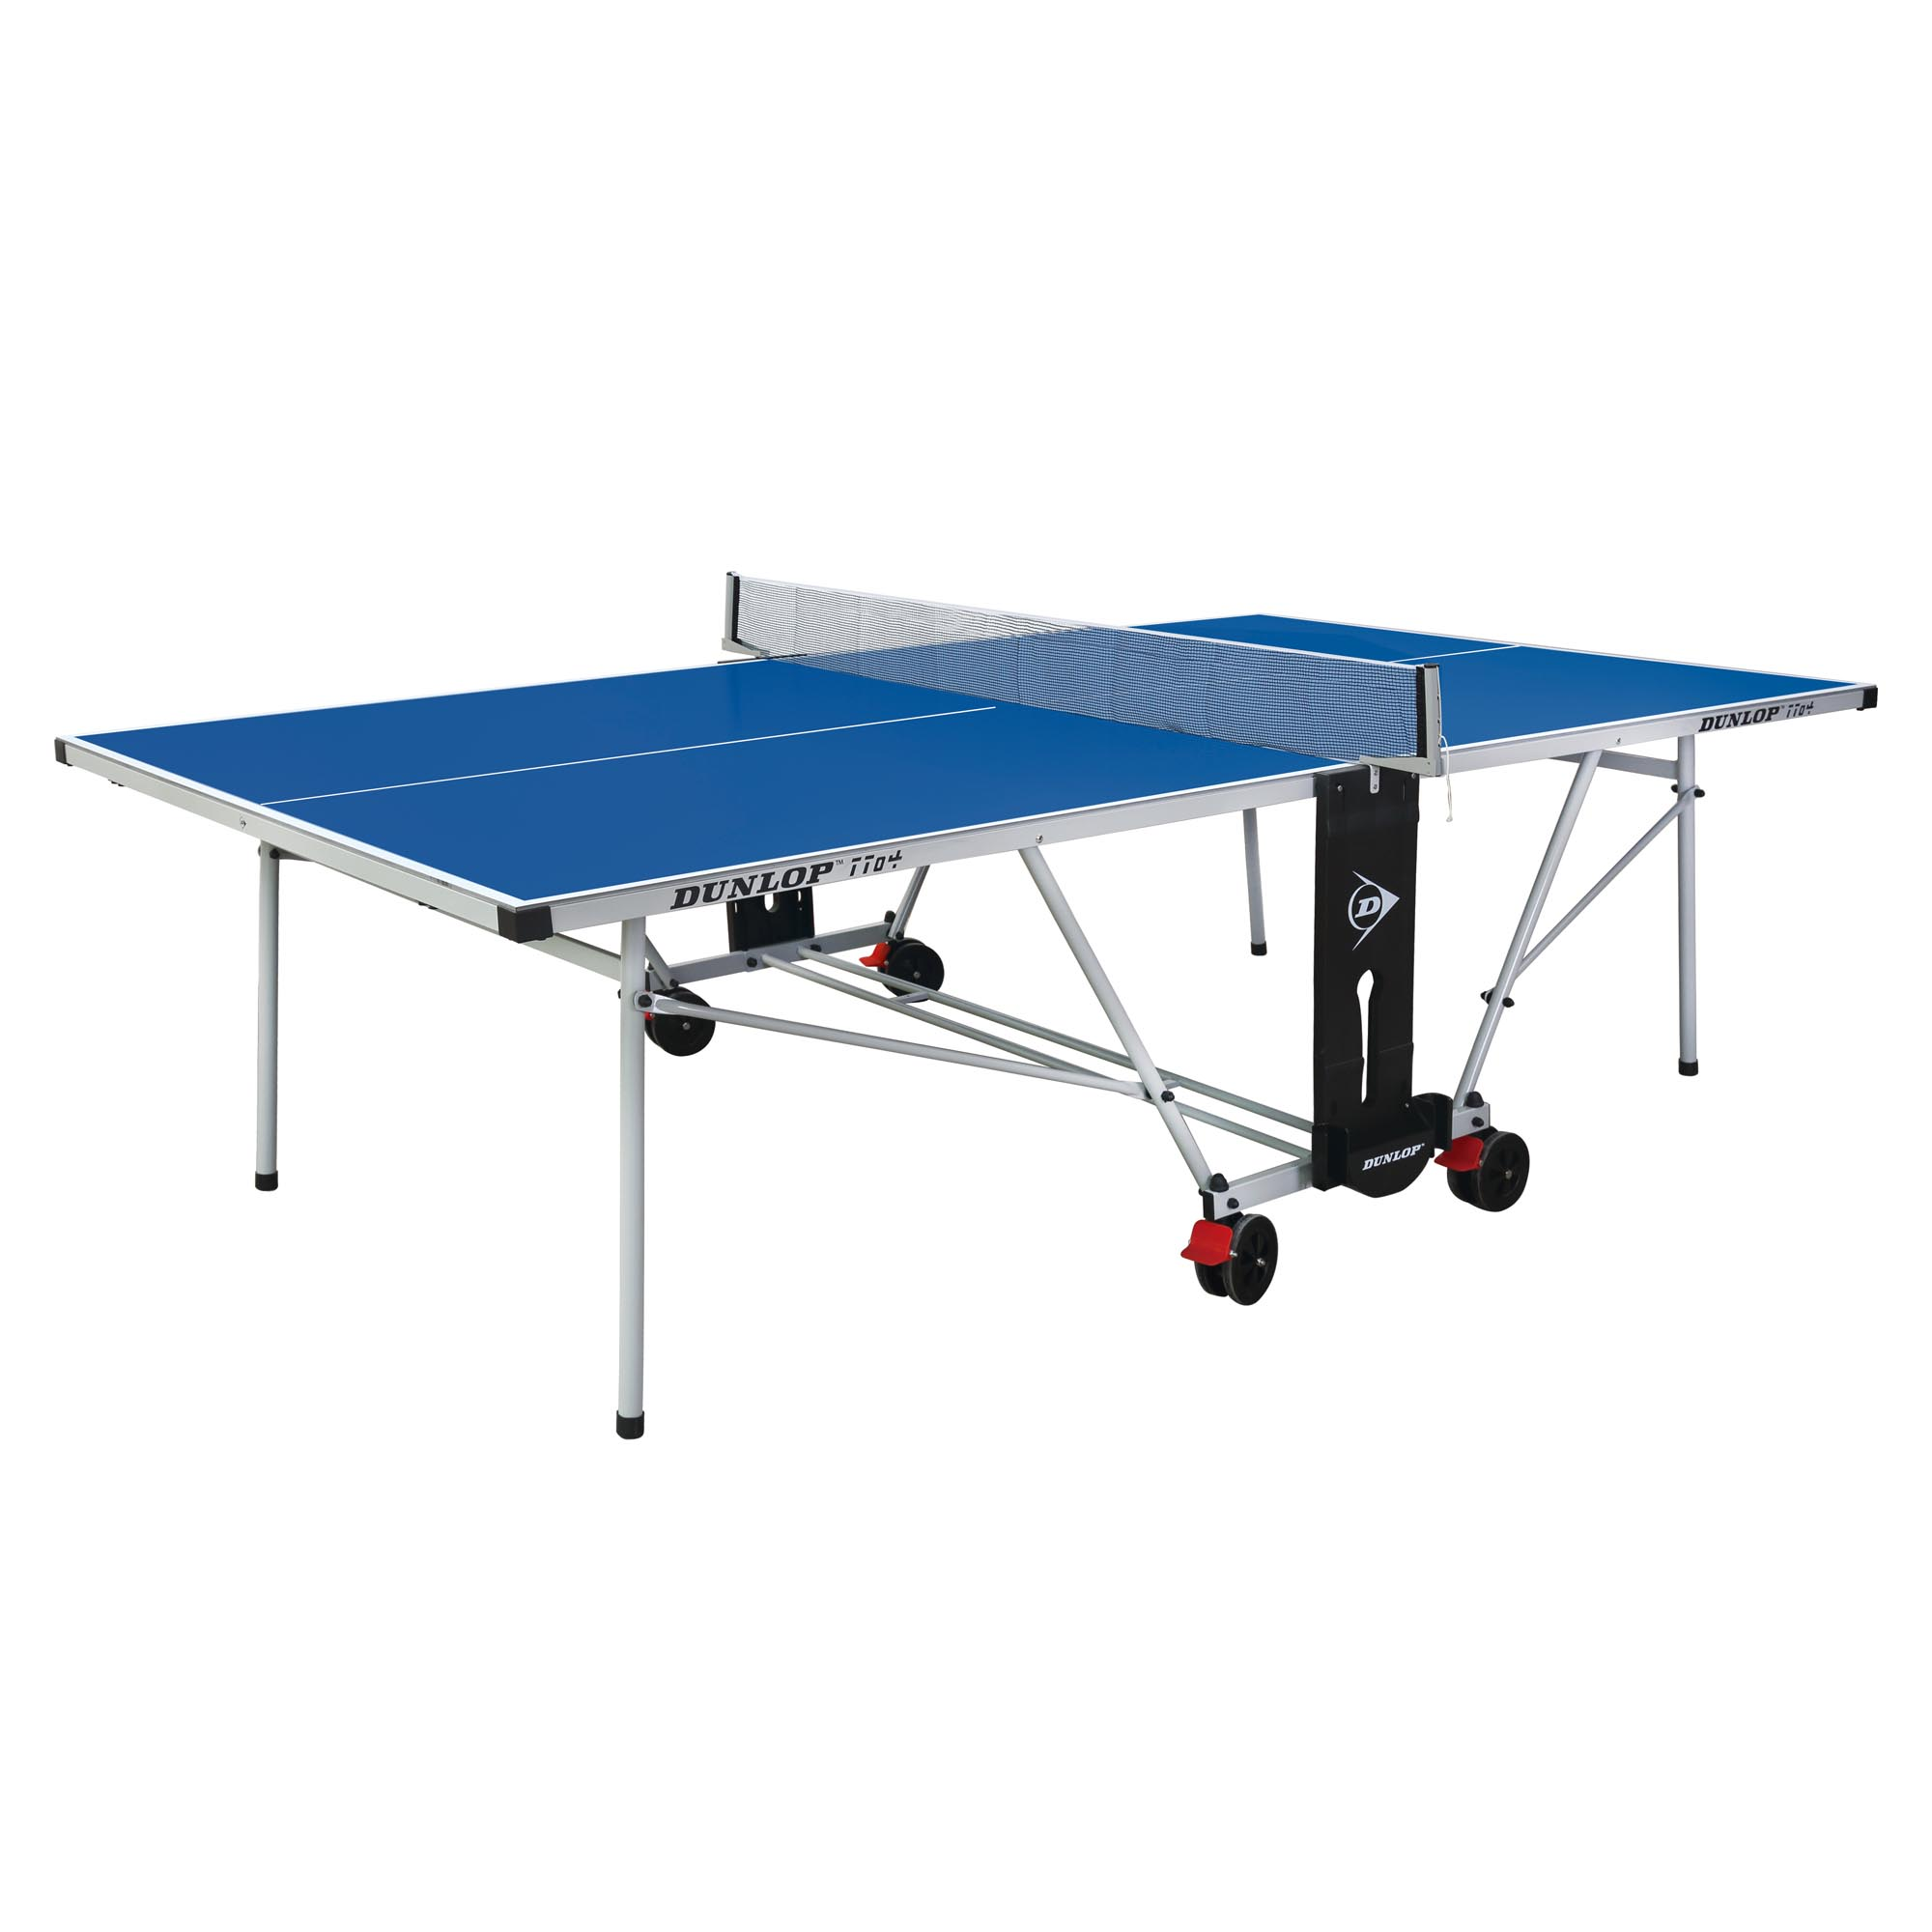 Table tennis table cover shop for cheap tables and save - Weatherproof table tennis table ...